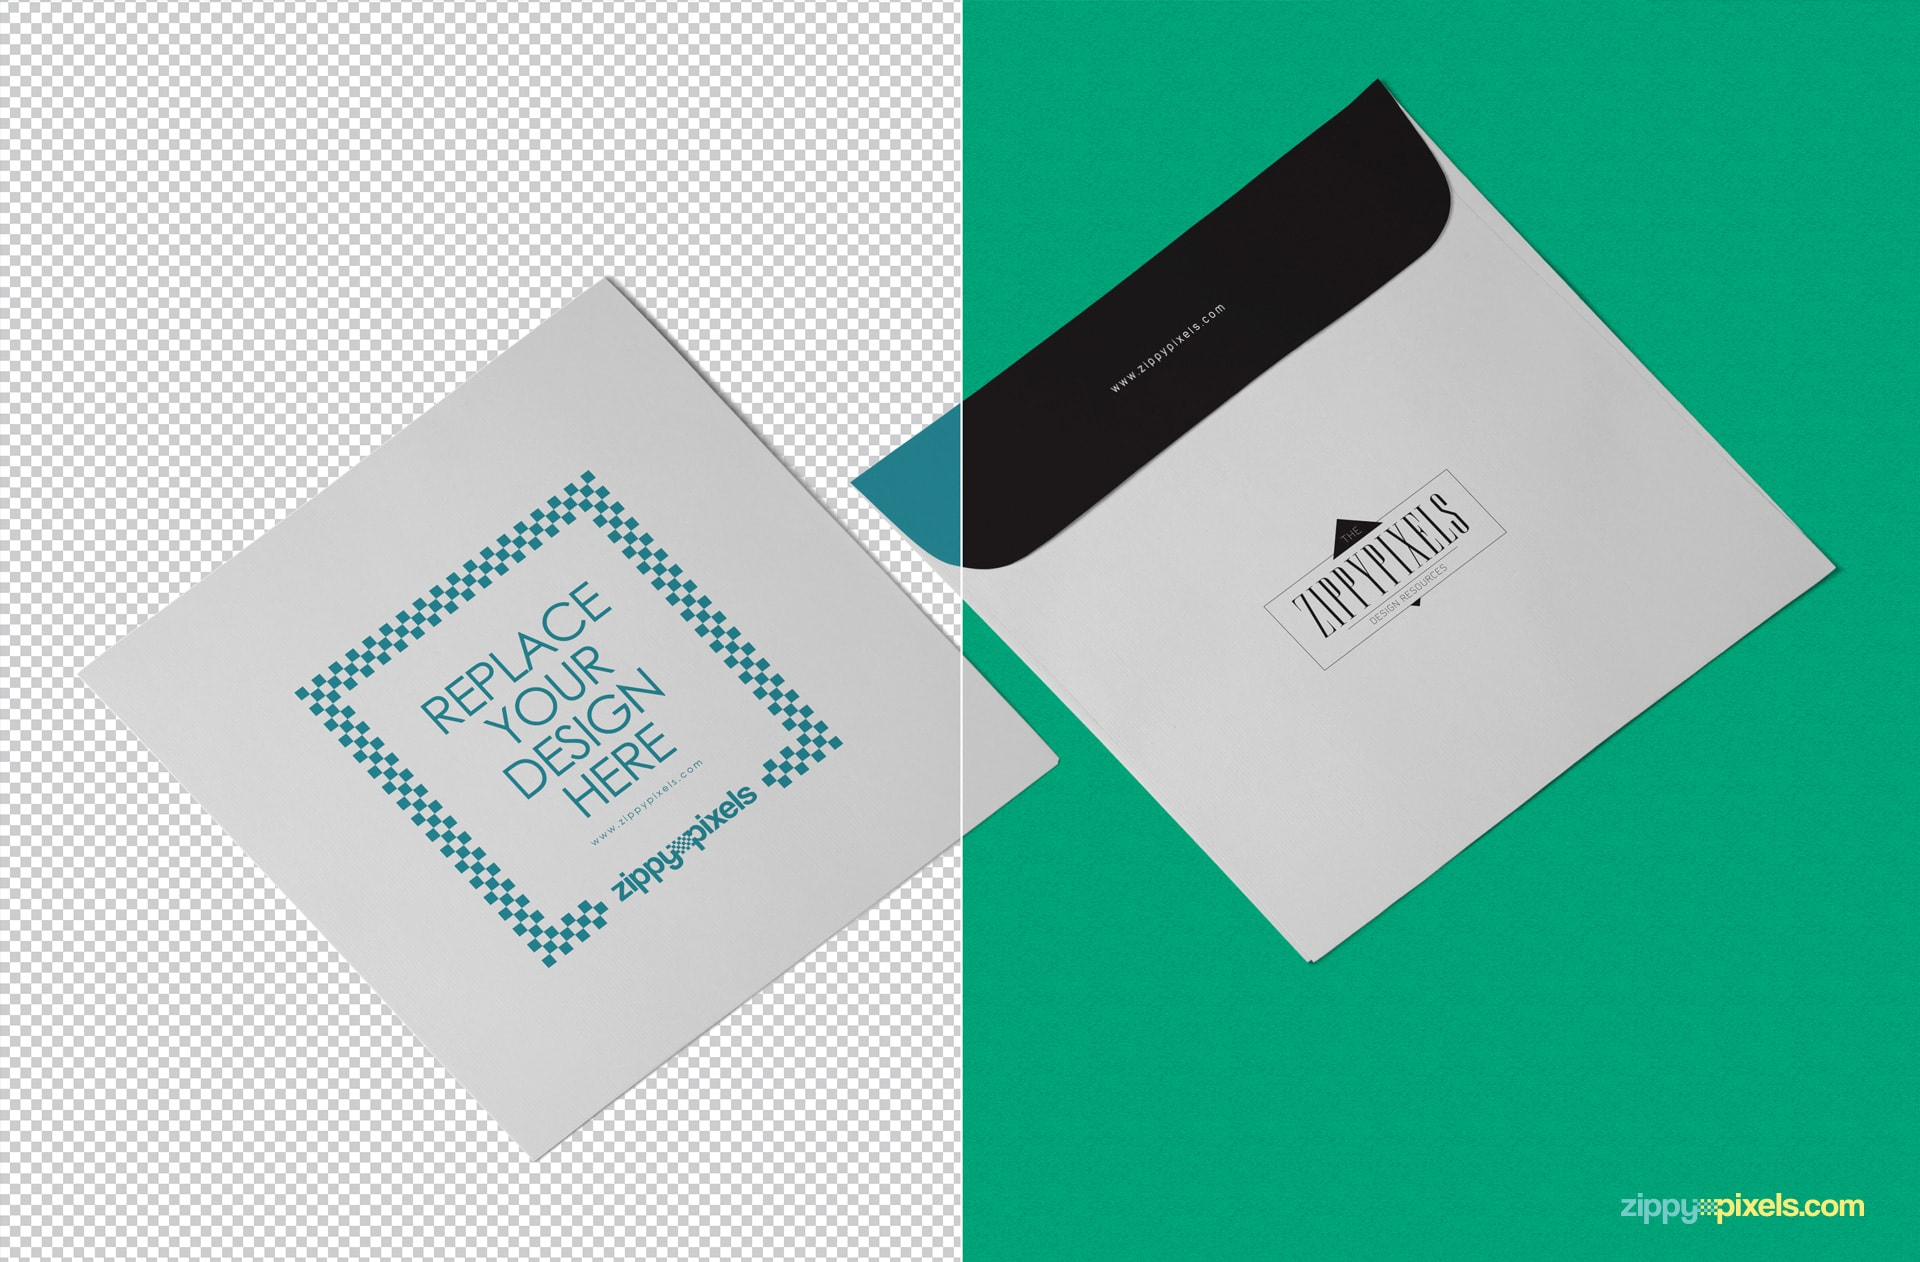 editable envelope PSD mockup for showcasing your designs